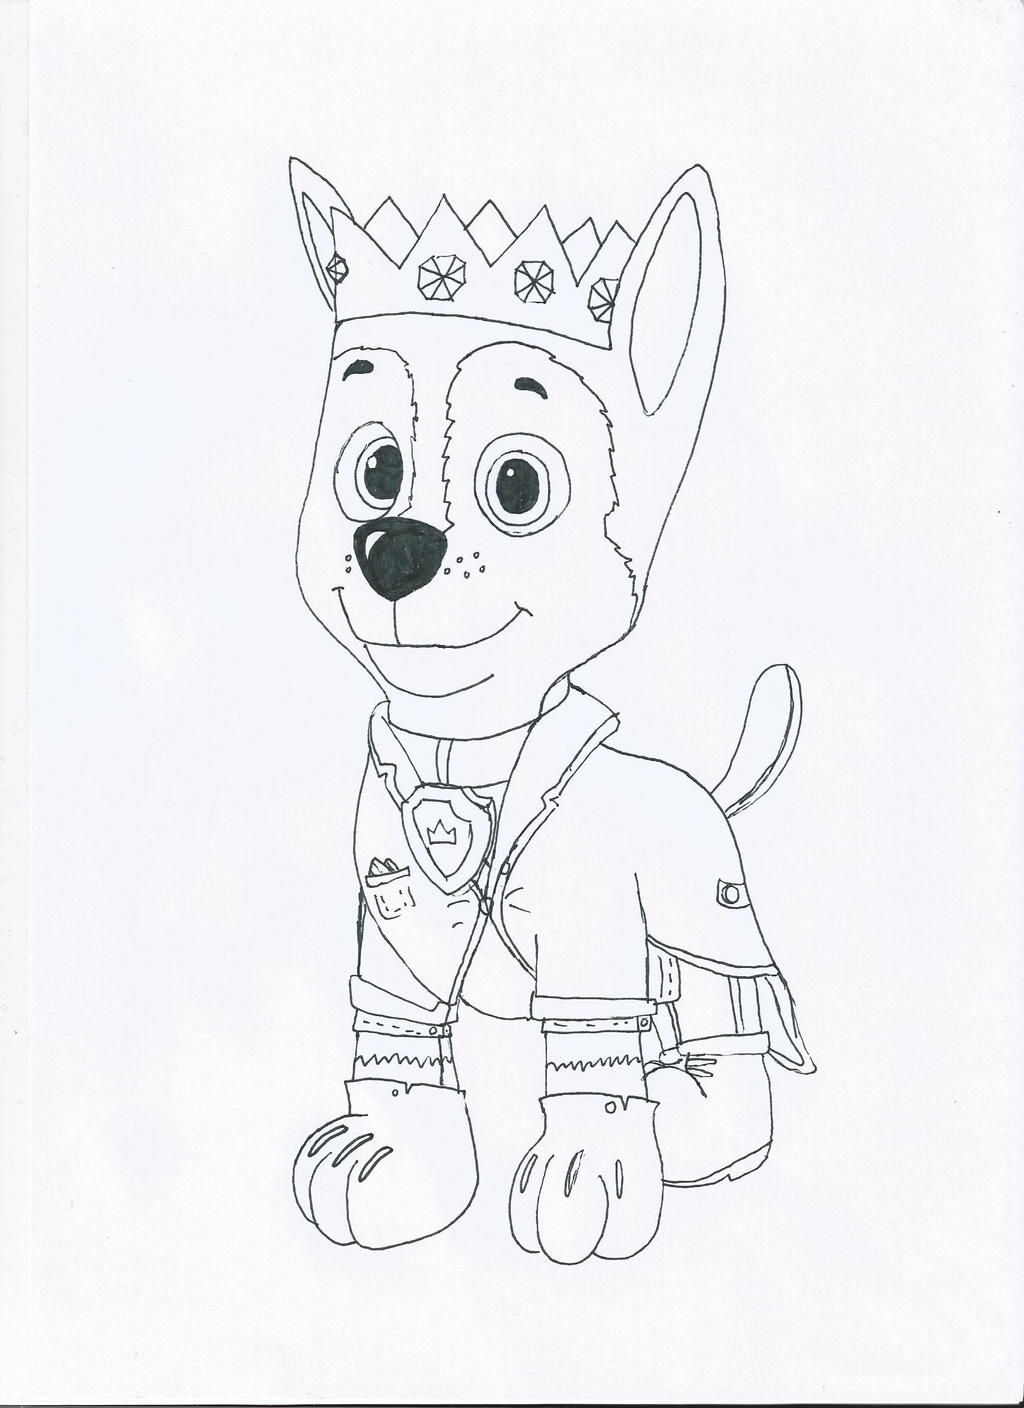 chase paw patrol coloring picture paw patrol coloring pages for